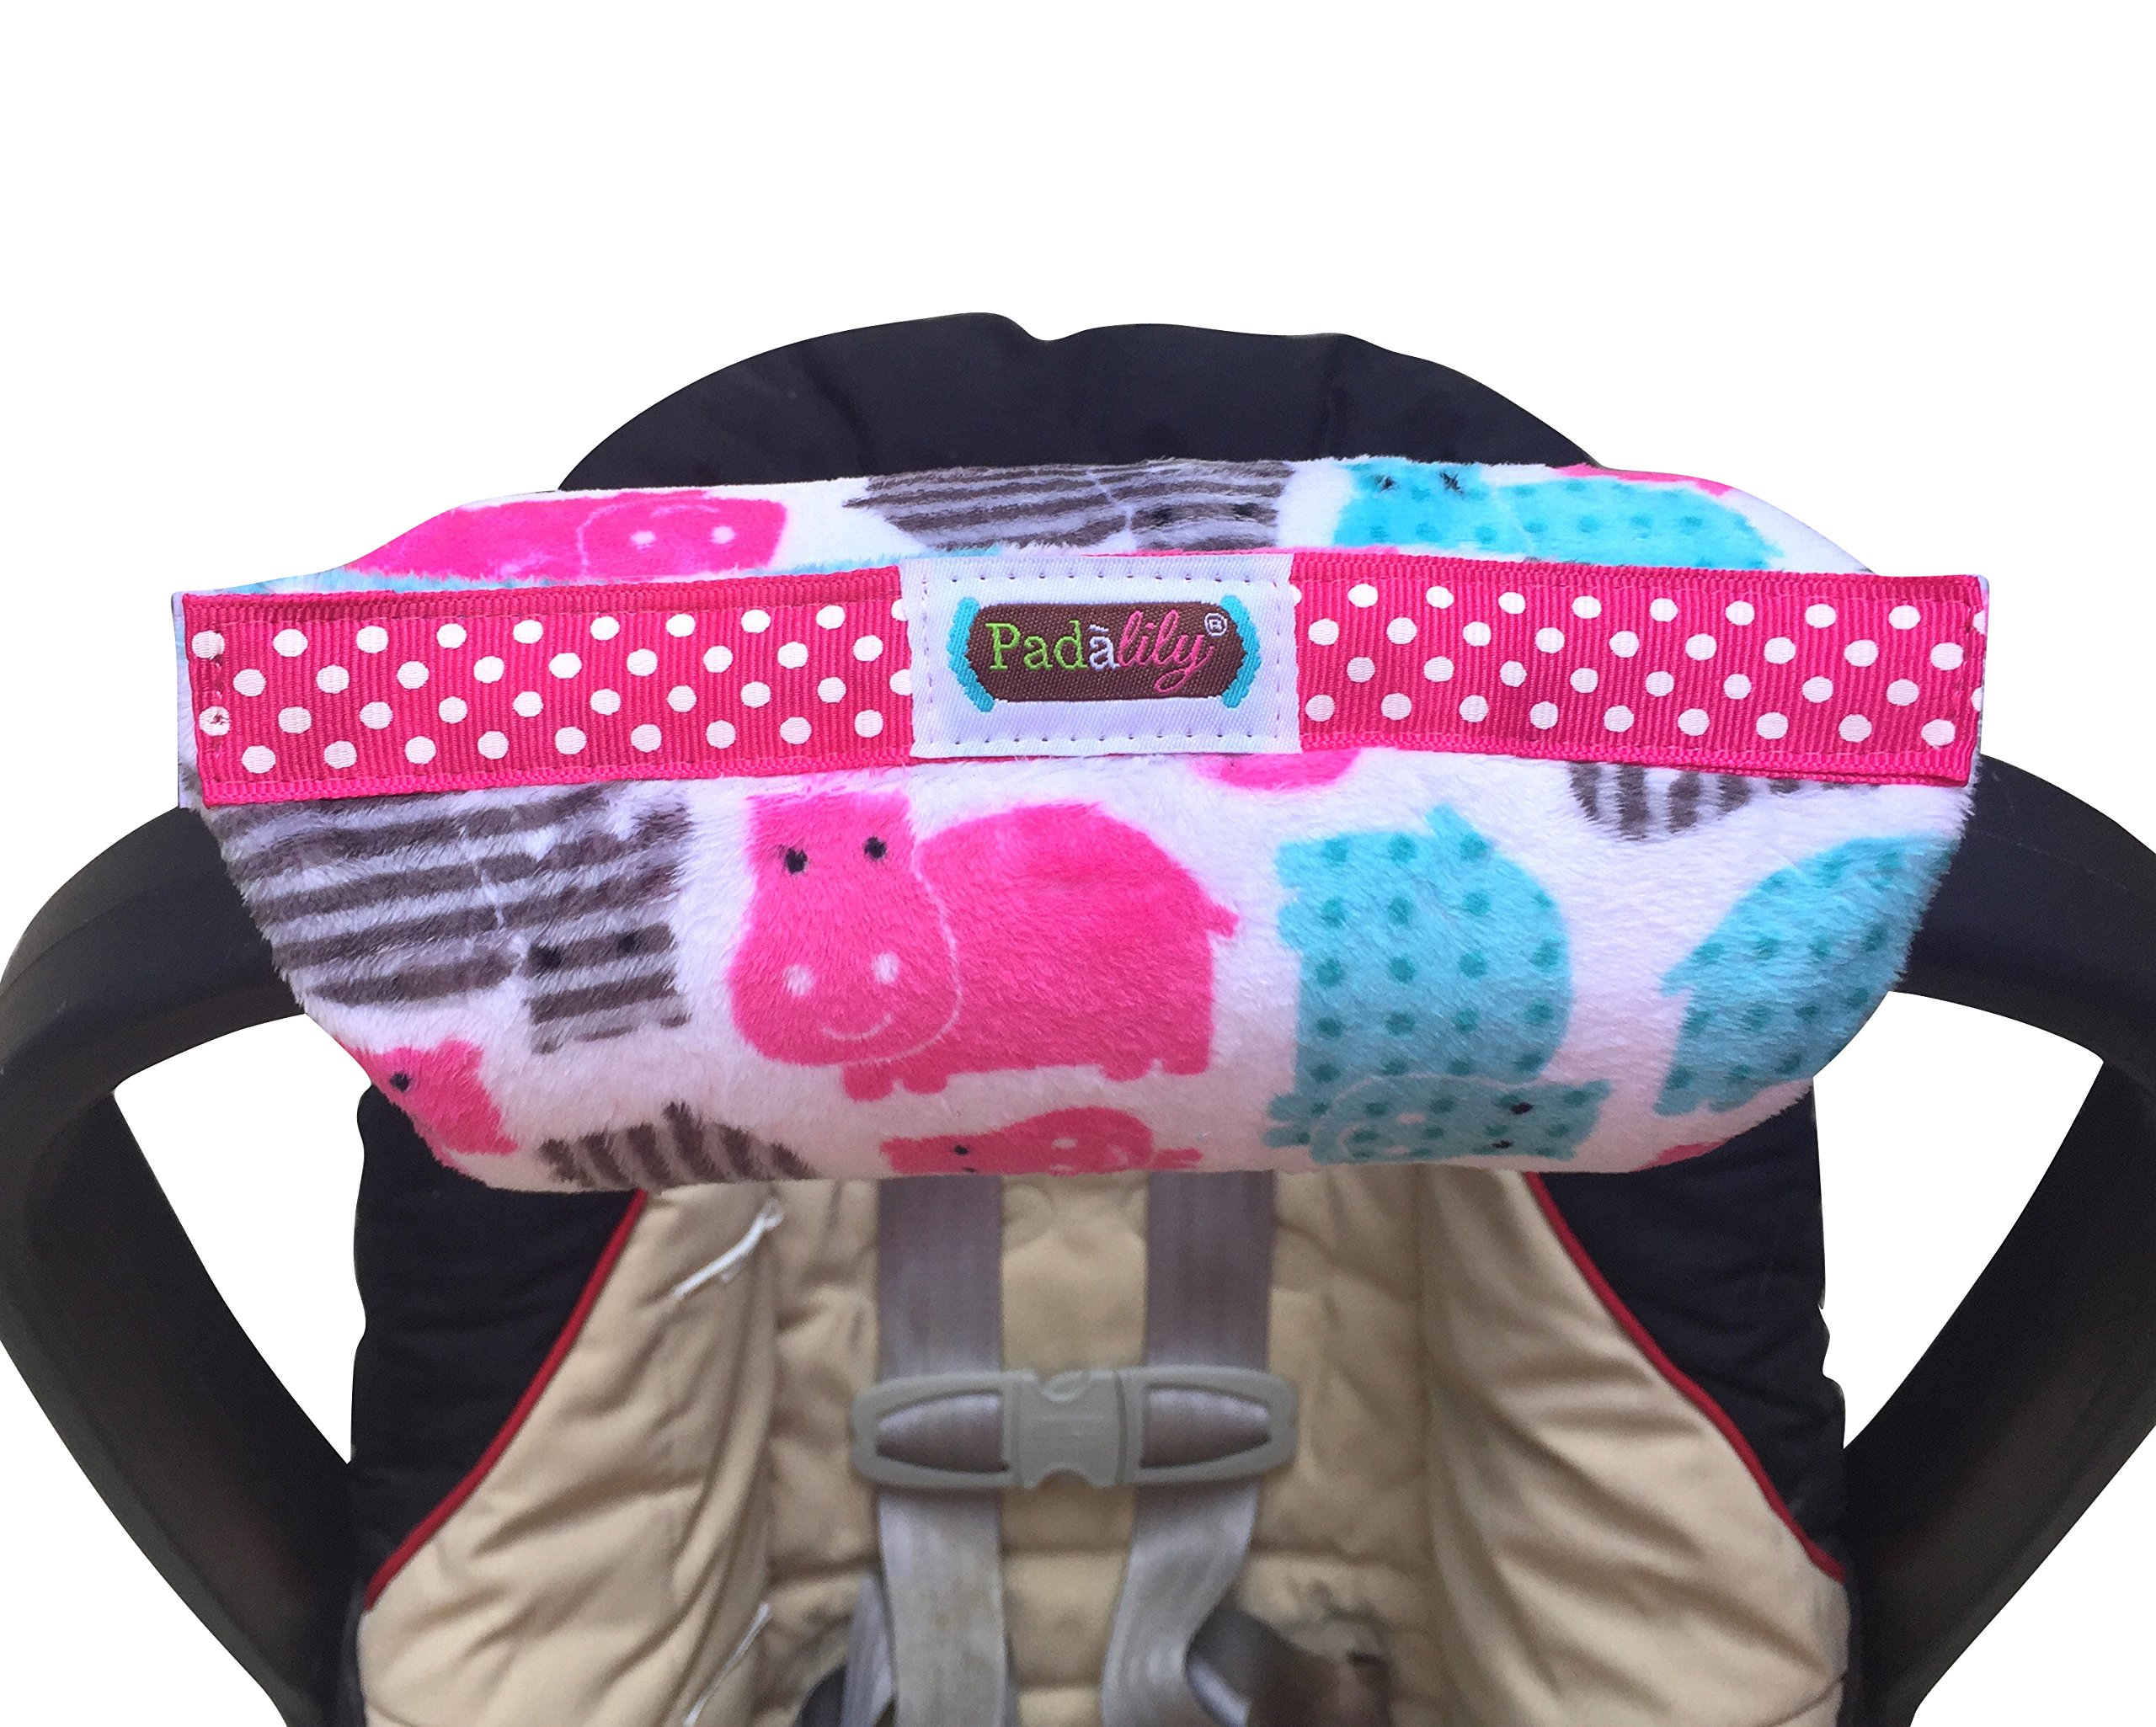 Get Quotations Padalily The Original Car Seat Handle Cushion Pad Pillow Newborn 0 12 Months